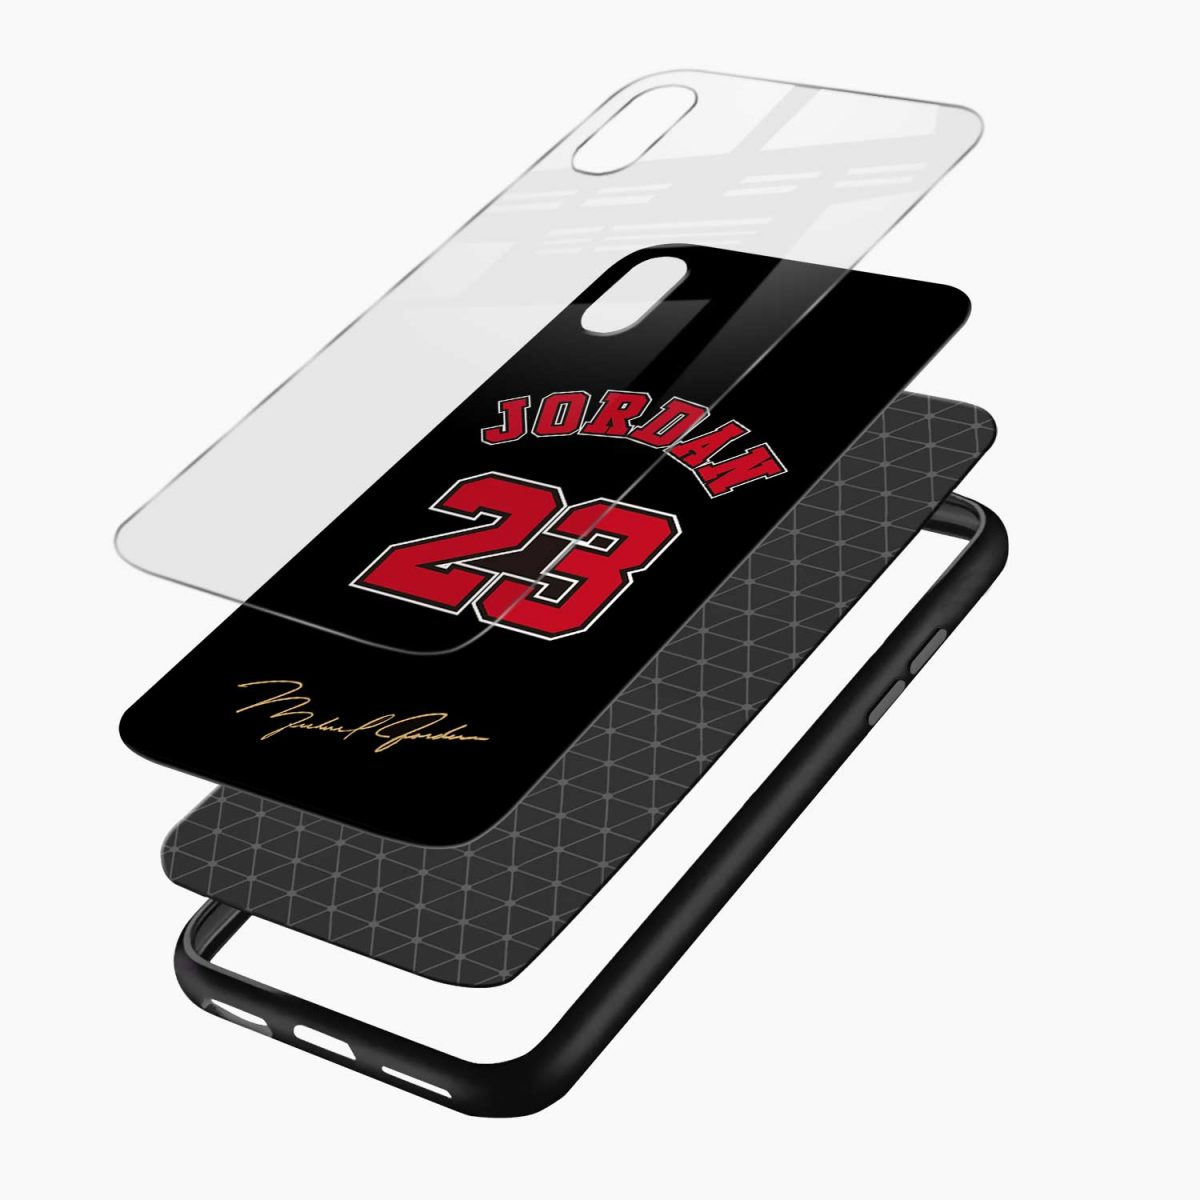 jordan 23 layers view apple iphone x xs max back cover